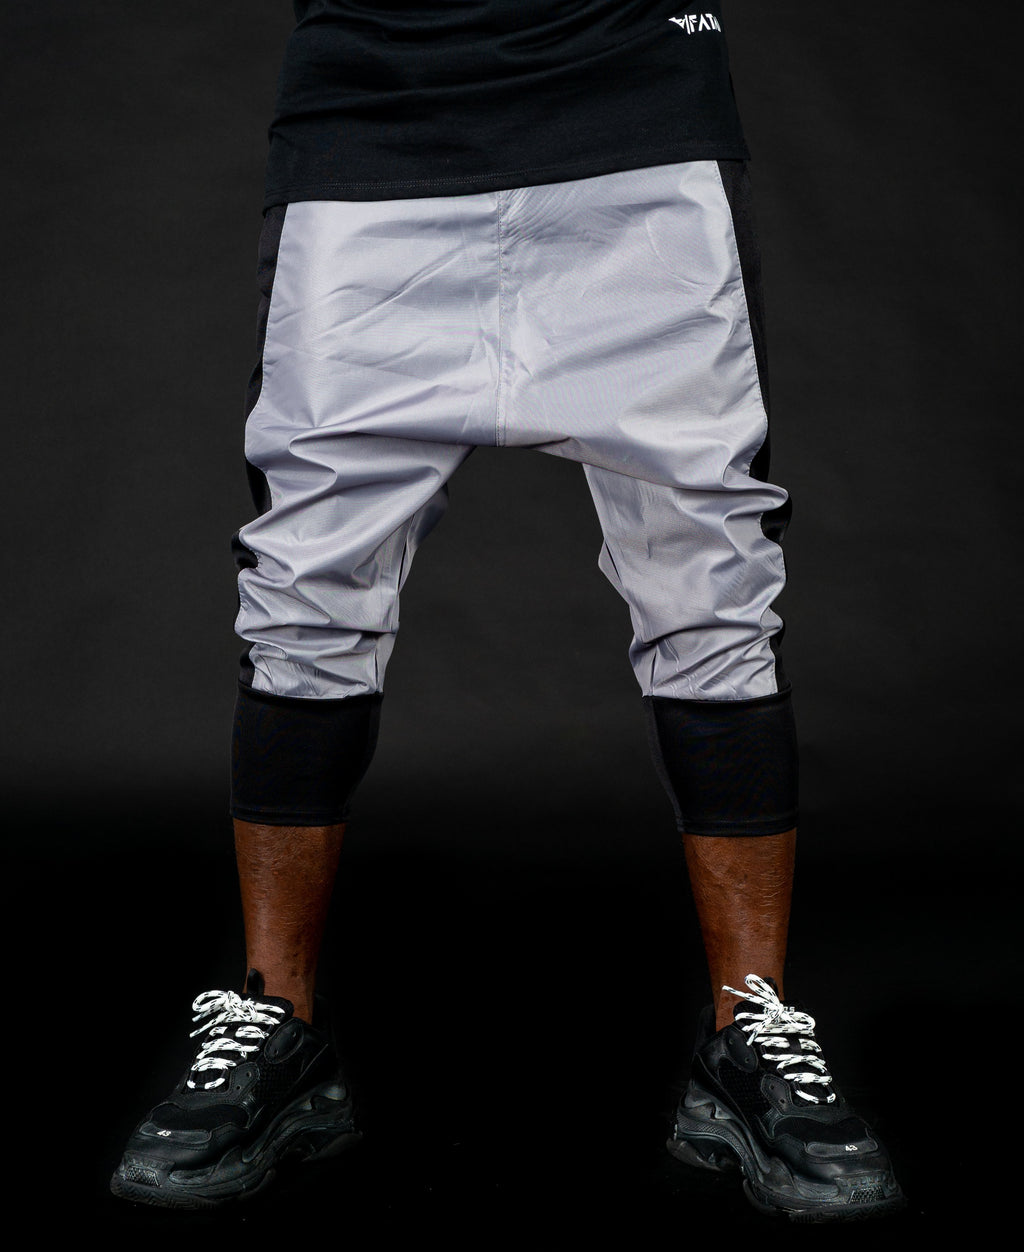 Short trousers black and grey - Fatai Style